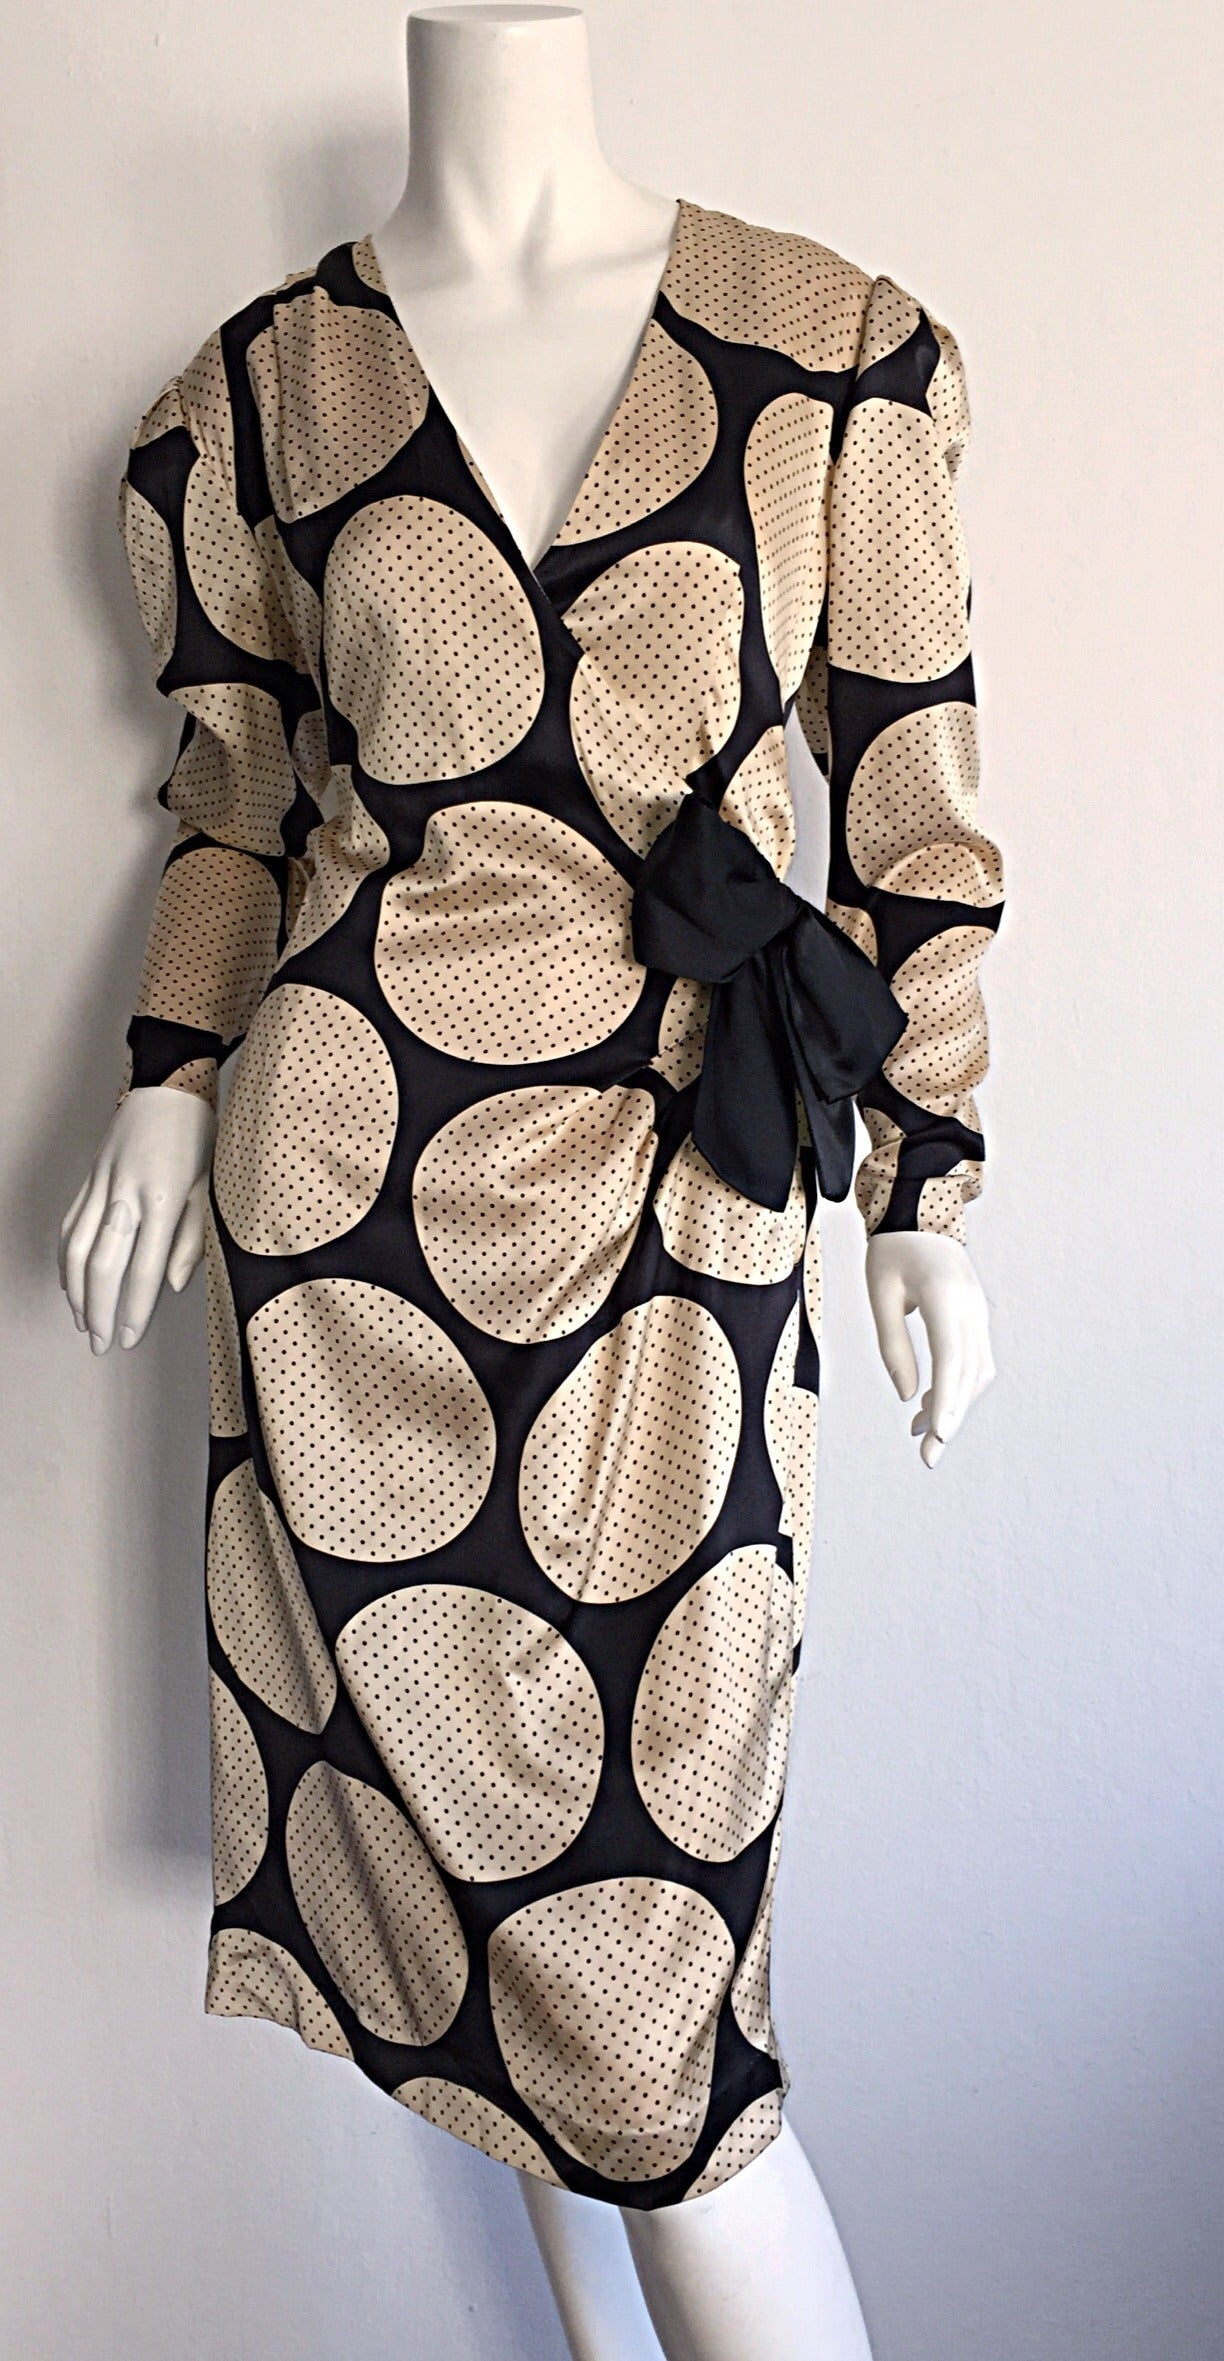 Vintage Hanae Mori Polka Dot / Pin Dot Silk Wrap Dress In Excellent Condition For Sale In Chicago, IL